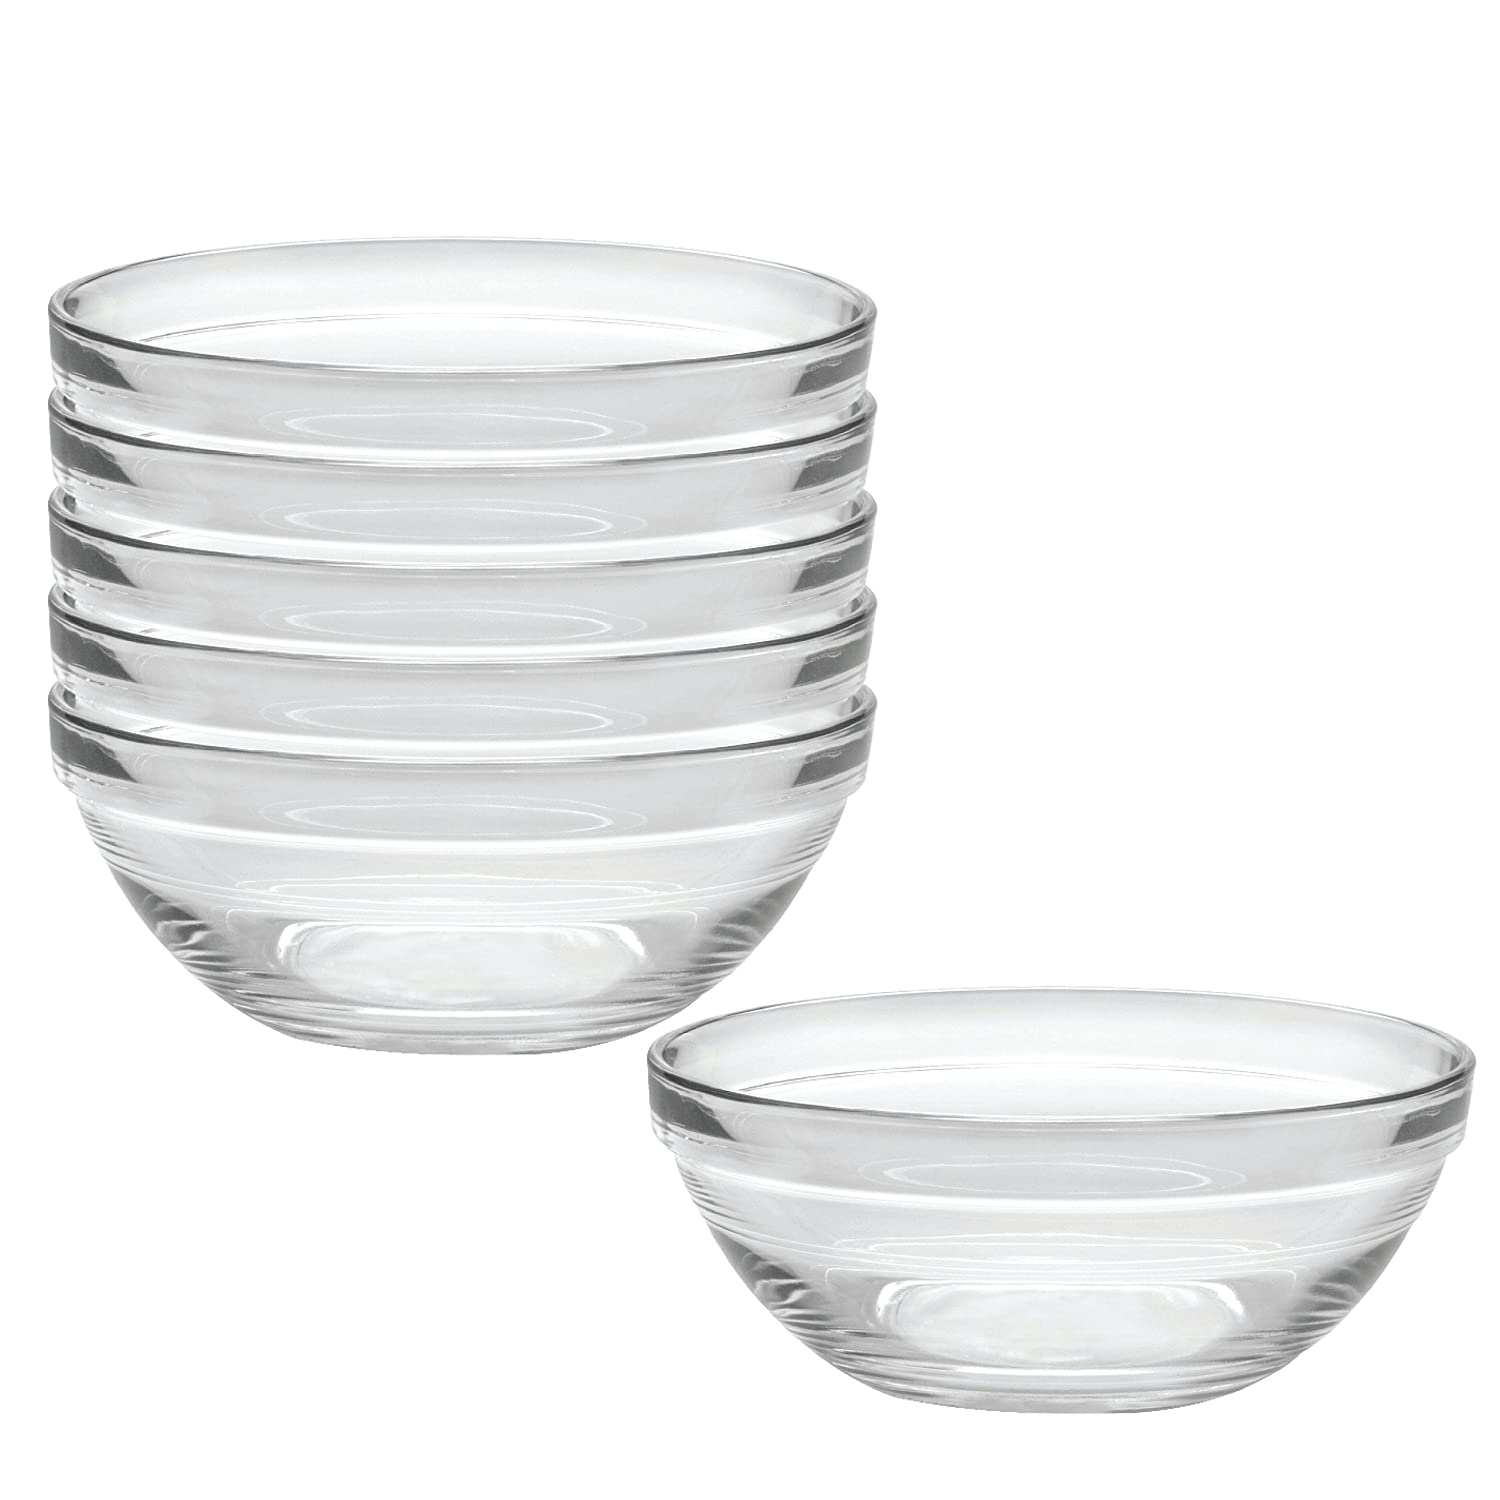 Duralex Made In France Lys 10-1//4-Inch Stackable Clear Bowl Set of 6 2029AF06//6